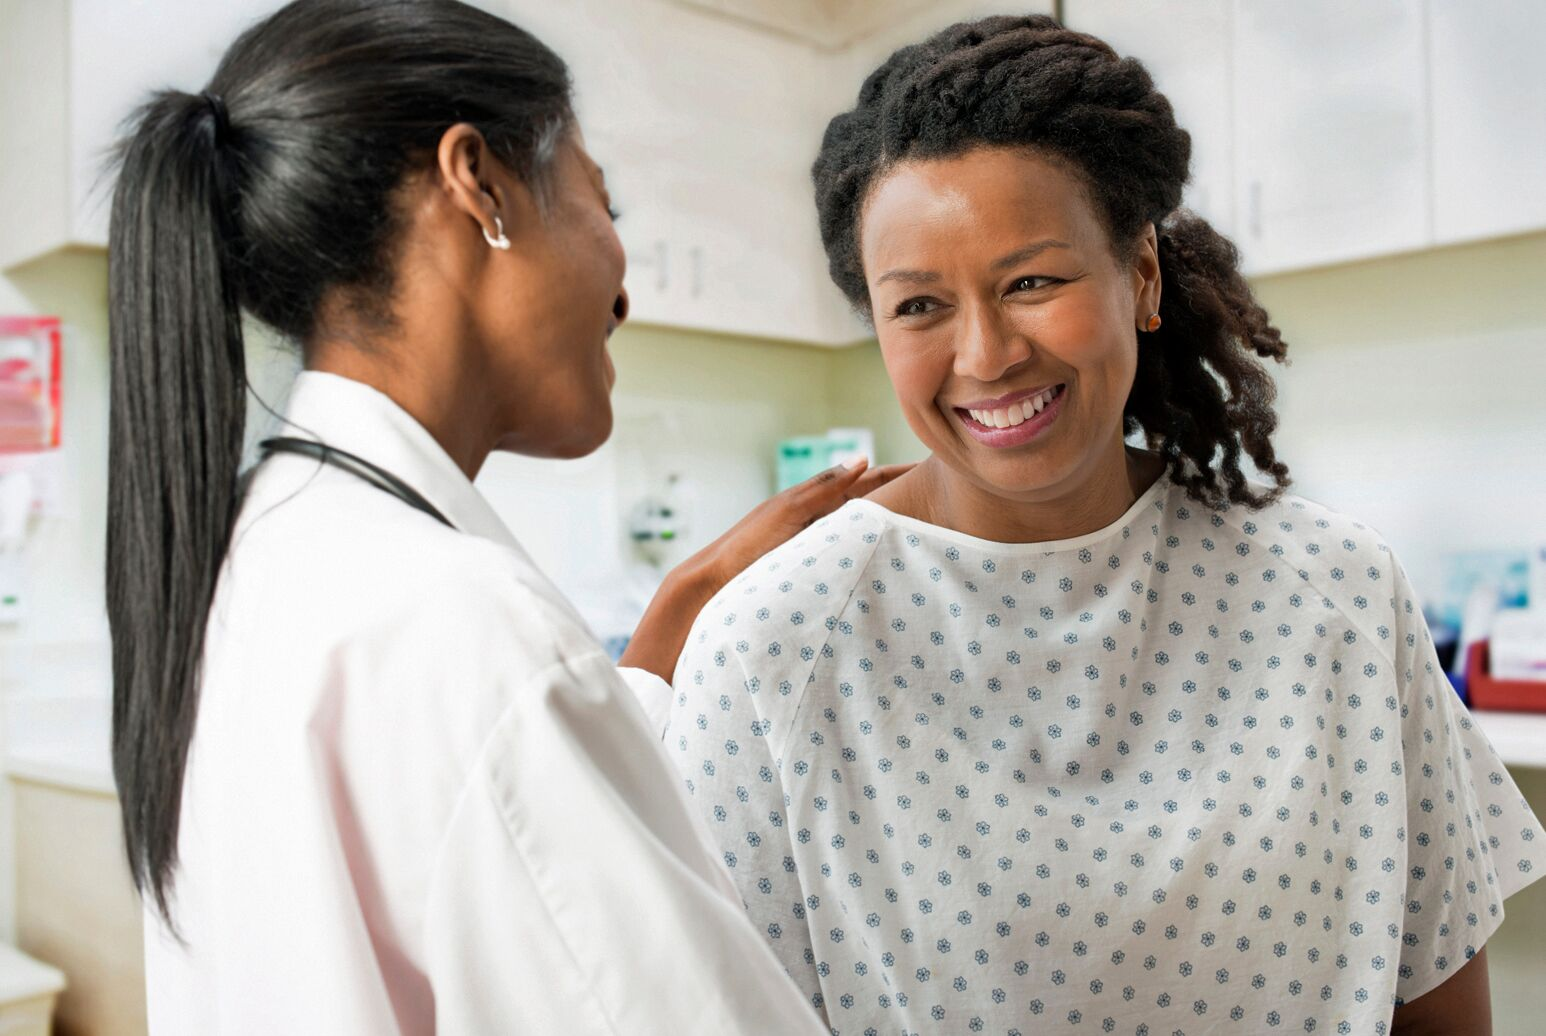 A female clinician holds a black woman's shoulder. Benjamin Schwartz, MD, talks about how doctors can connect better with patients to improve experiences